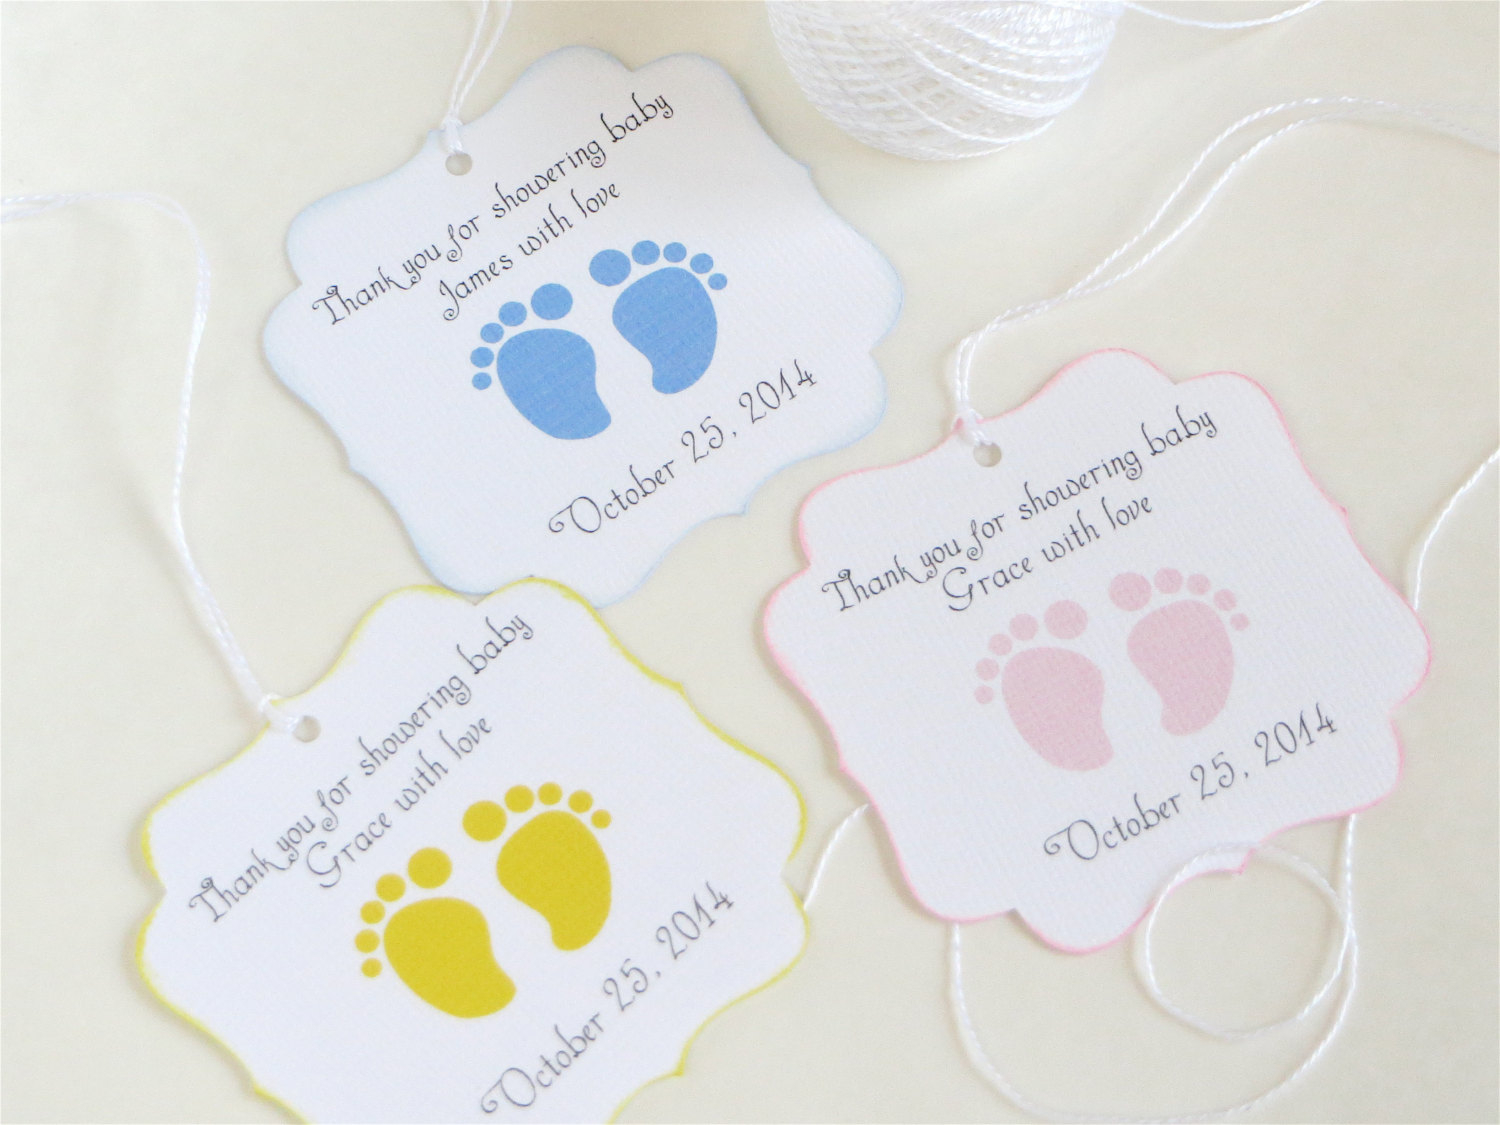 Full Size of Baby Shower:36+ Retro Baby Shower Thank You Wording Image Concepts Baby Shower Thank You Wording Thank You Baby Shower Gifts Sample Wording For Hostess Gift Ideas Thank You Baby Shower Gifts Images High Definition Note To Coworkers For Gift Card Cheap Ideas